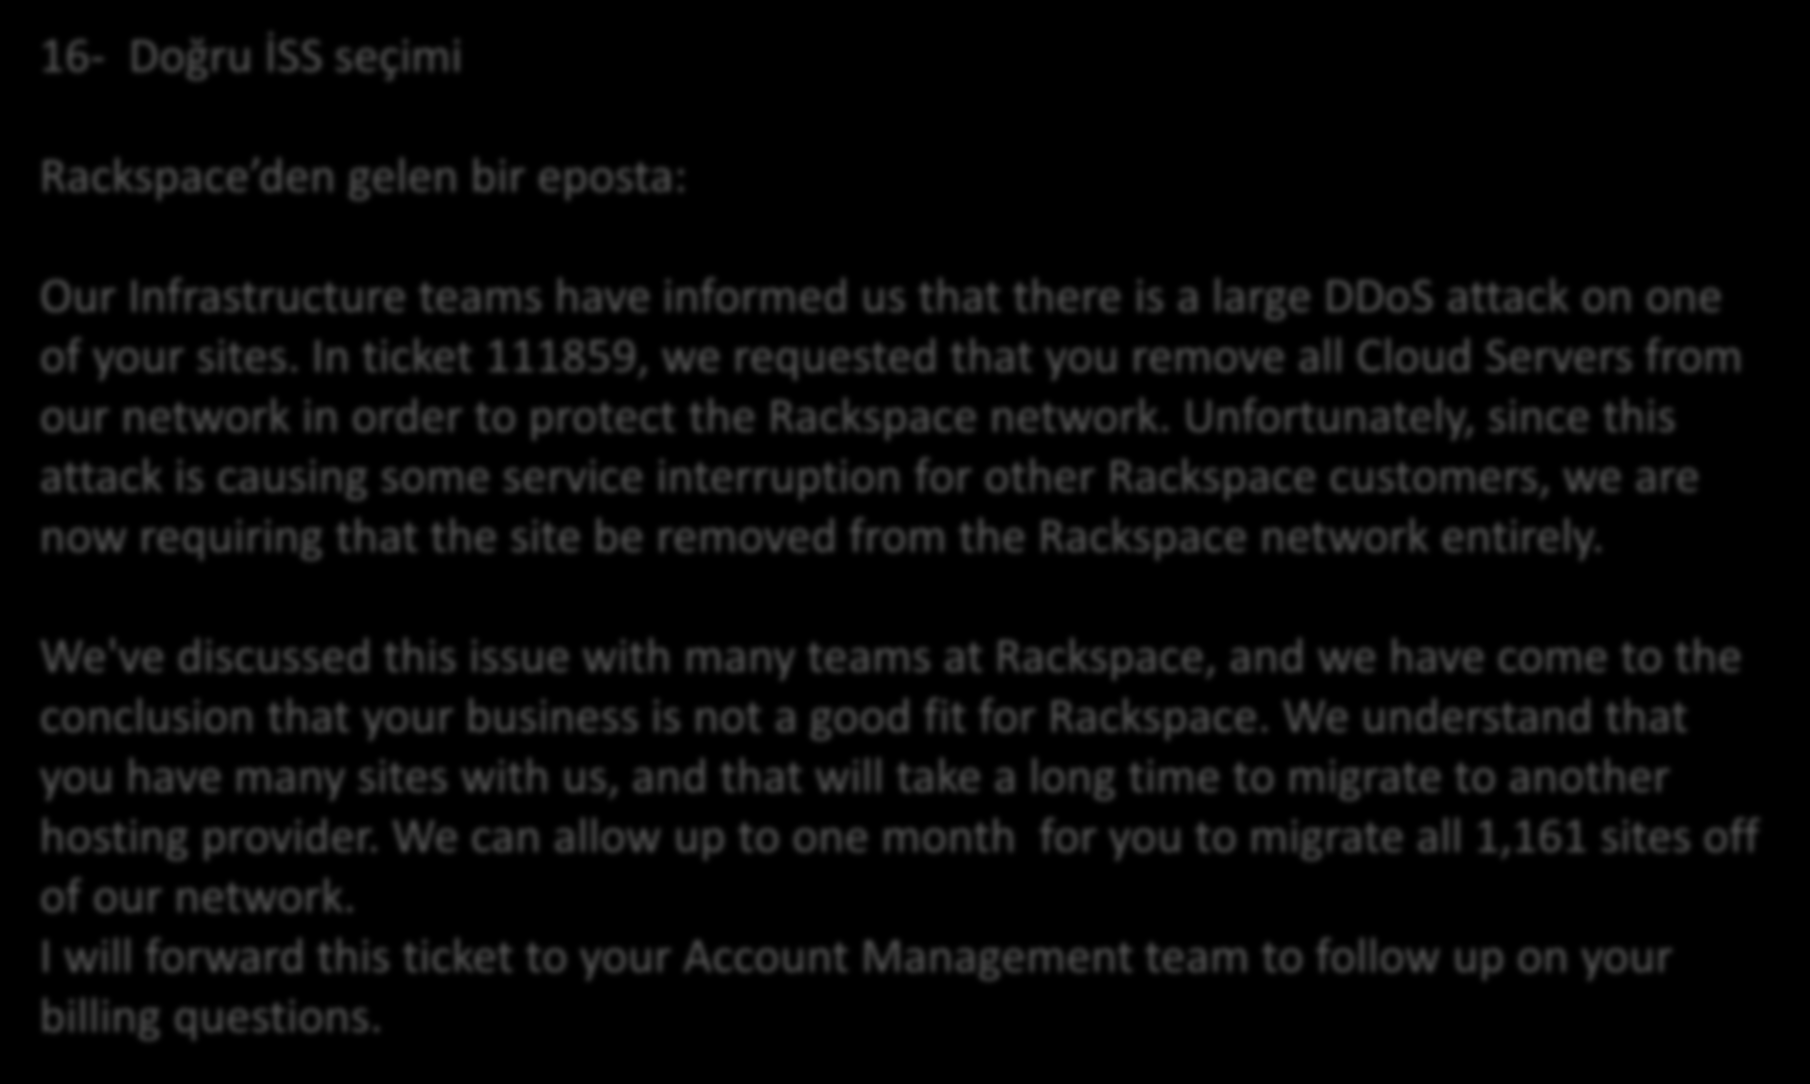 Yöntemler 16- Doğru İSS seçimi Rackspace den gelen bir eposta: Our Infrastructure teams have informed us that there is a large DDoS attack on one of your sites.